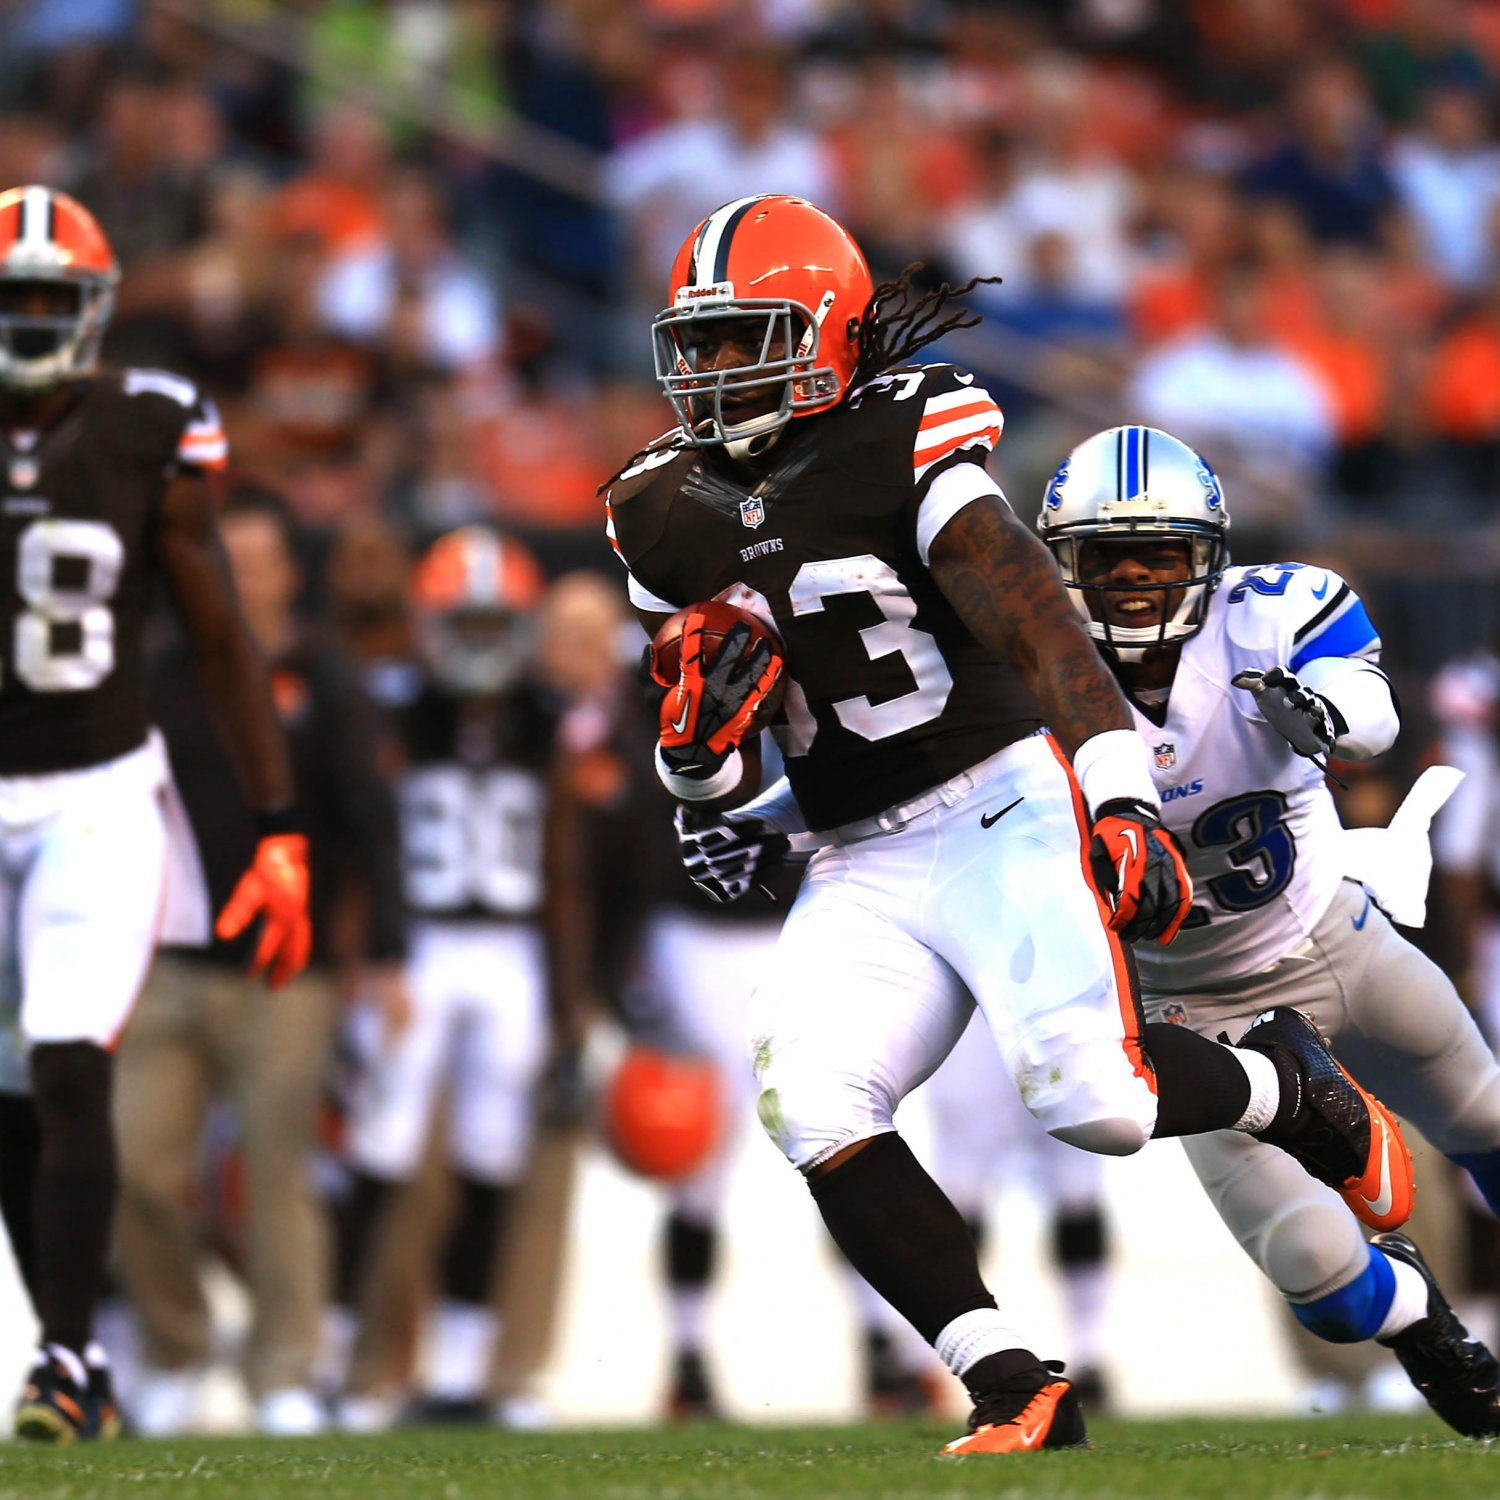 Cleveland Browns Roster 2013: Latest Cuts, Depth Charts